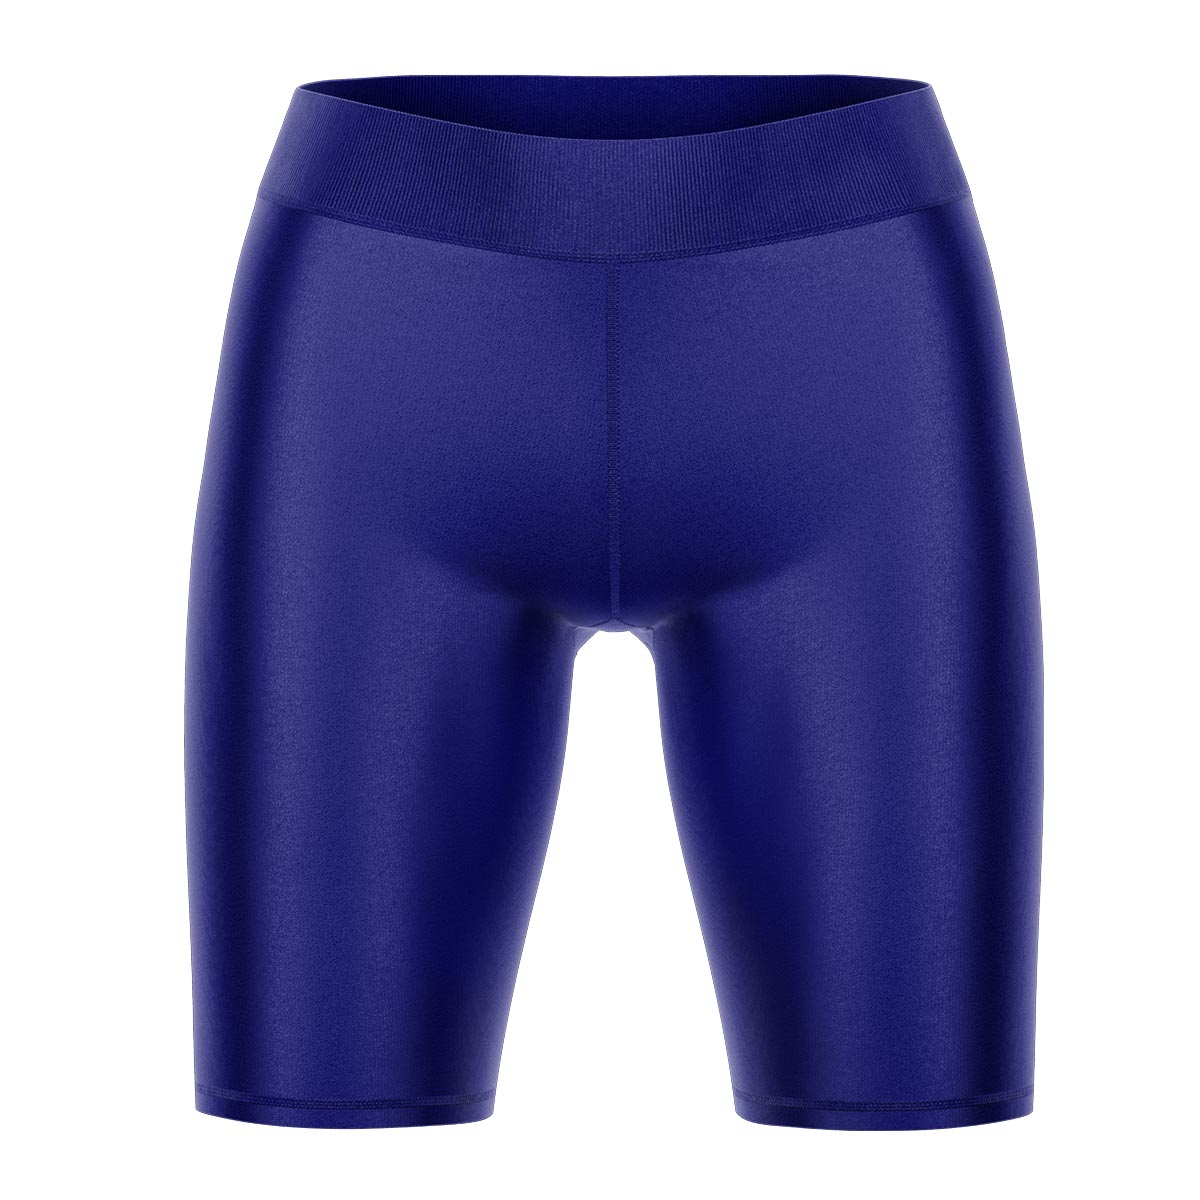 Dark Blue Yoga Shorts